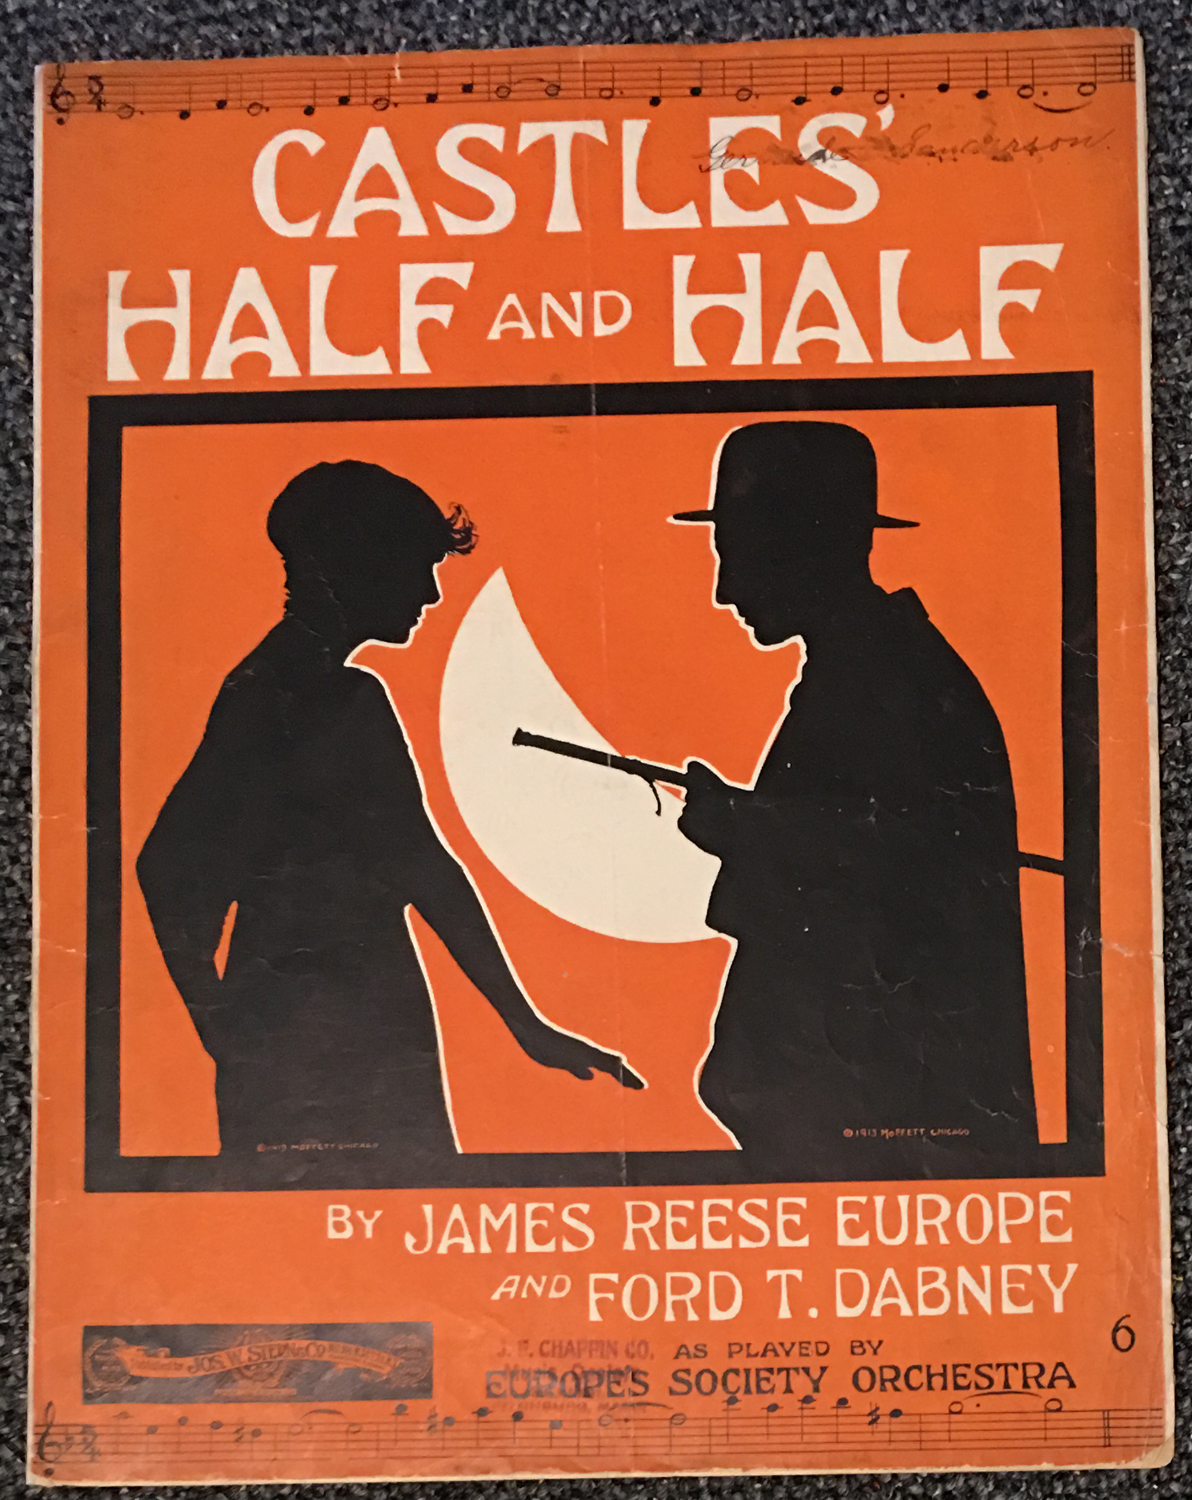 Image for Castles' Half and Half